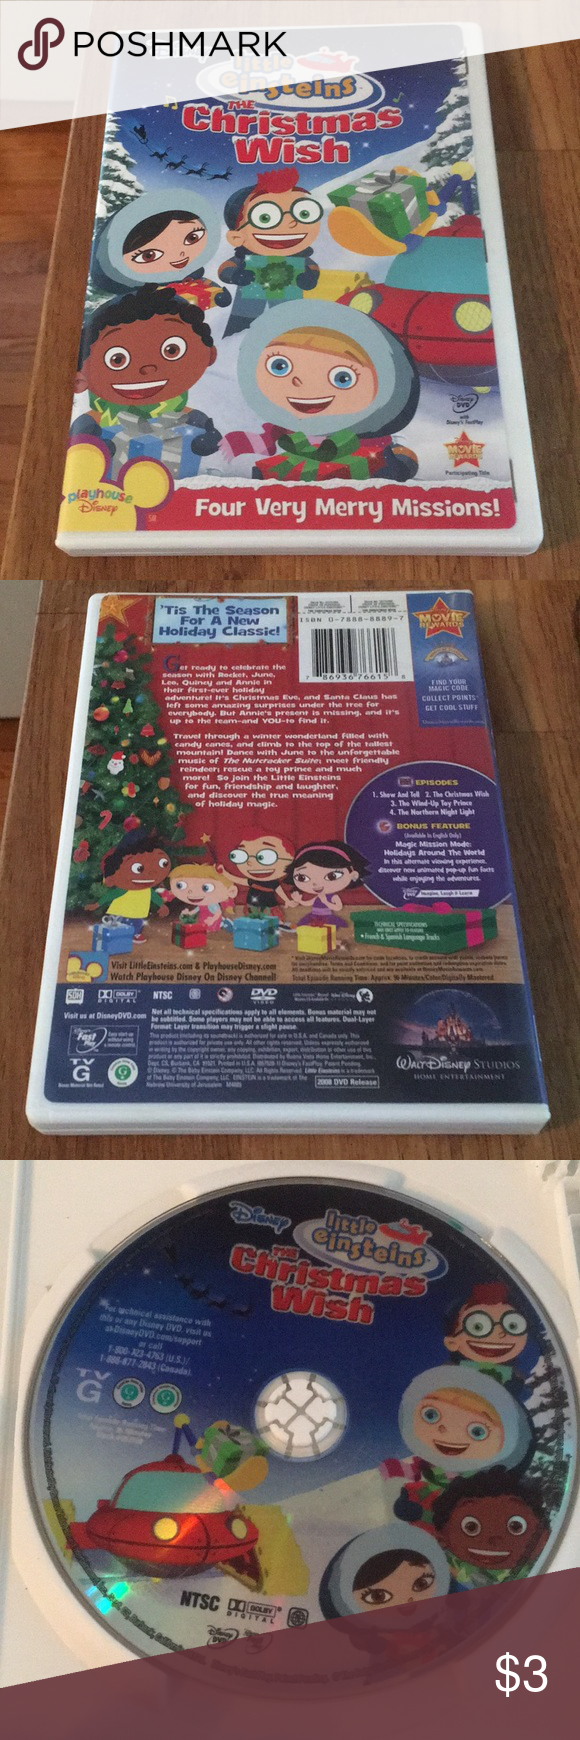 Little Einsteins The Christmas Wish Dvd Little Einsteins The Christmas Wish Dvd No Scratches 3 Or Free With Purchase Christmas Wishes Little Einsteins Merry